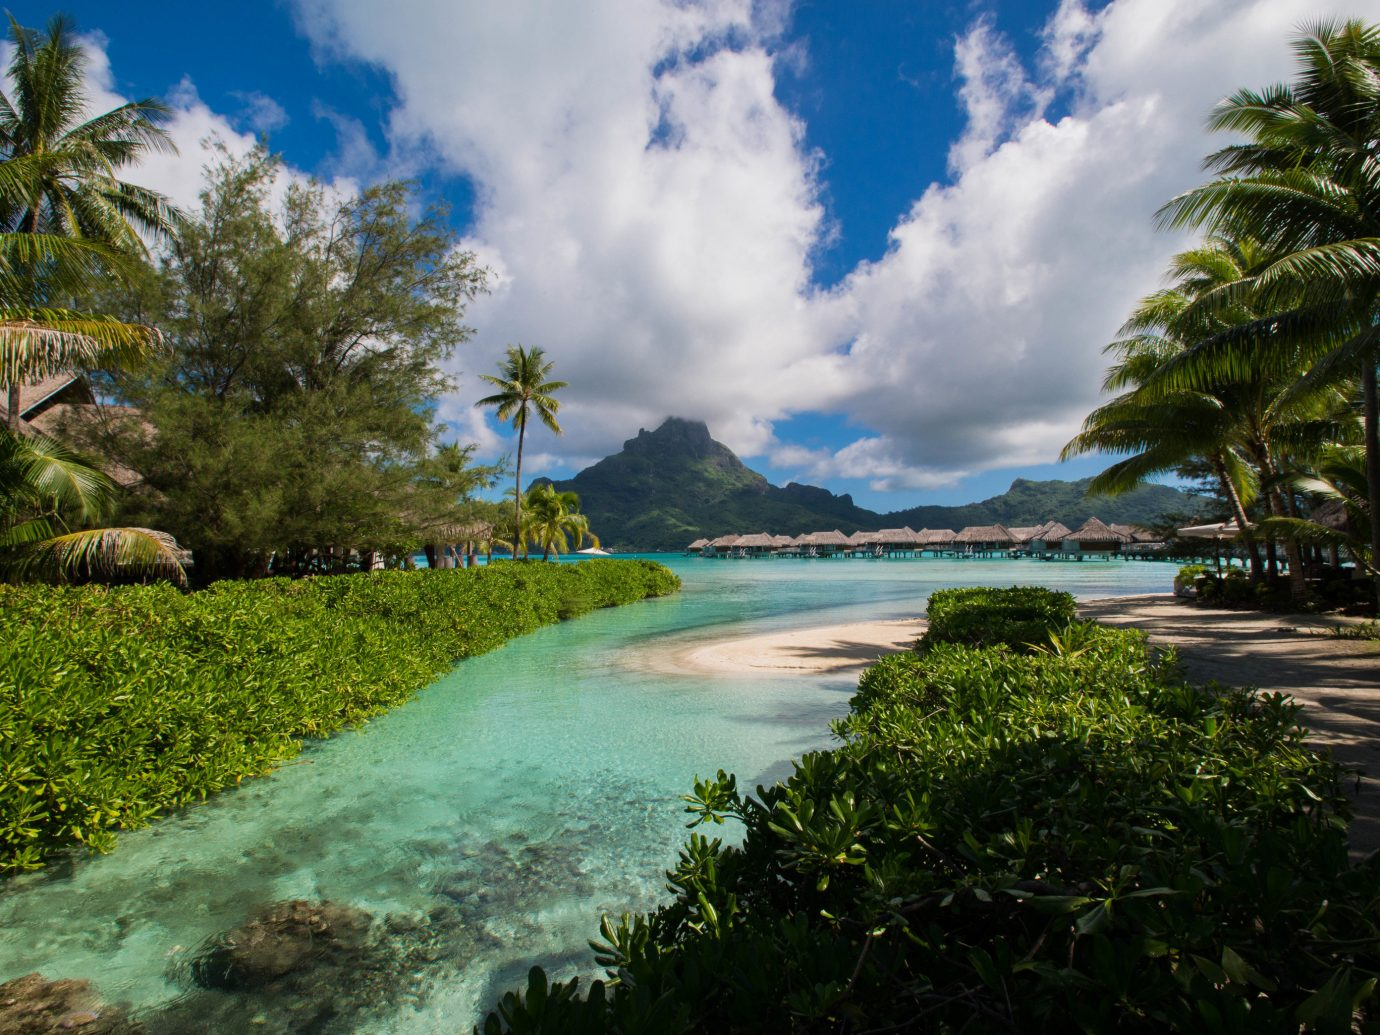 Hotels tree sky grass outdoor Nature geographical feature shore body of water Coast green Sea water Beach tropics Ocean vacation River arecales bay caribbean landscape Jungle Lagoon cove Island flower plant surrounded lush